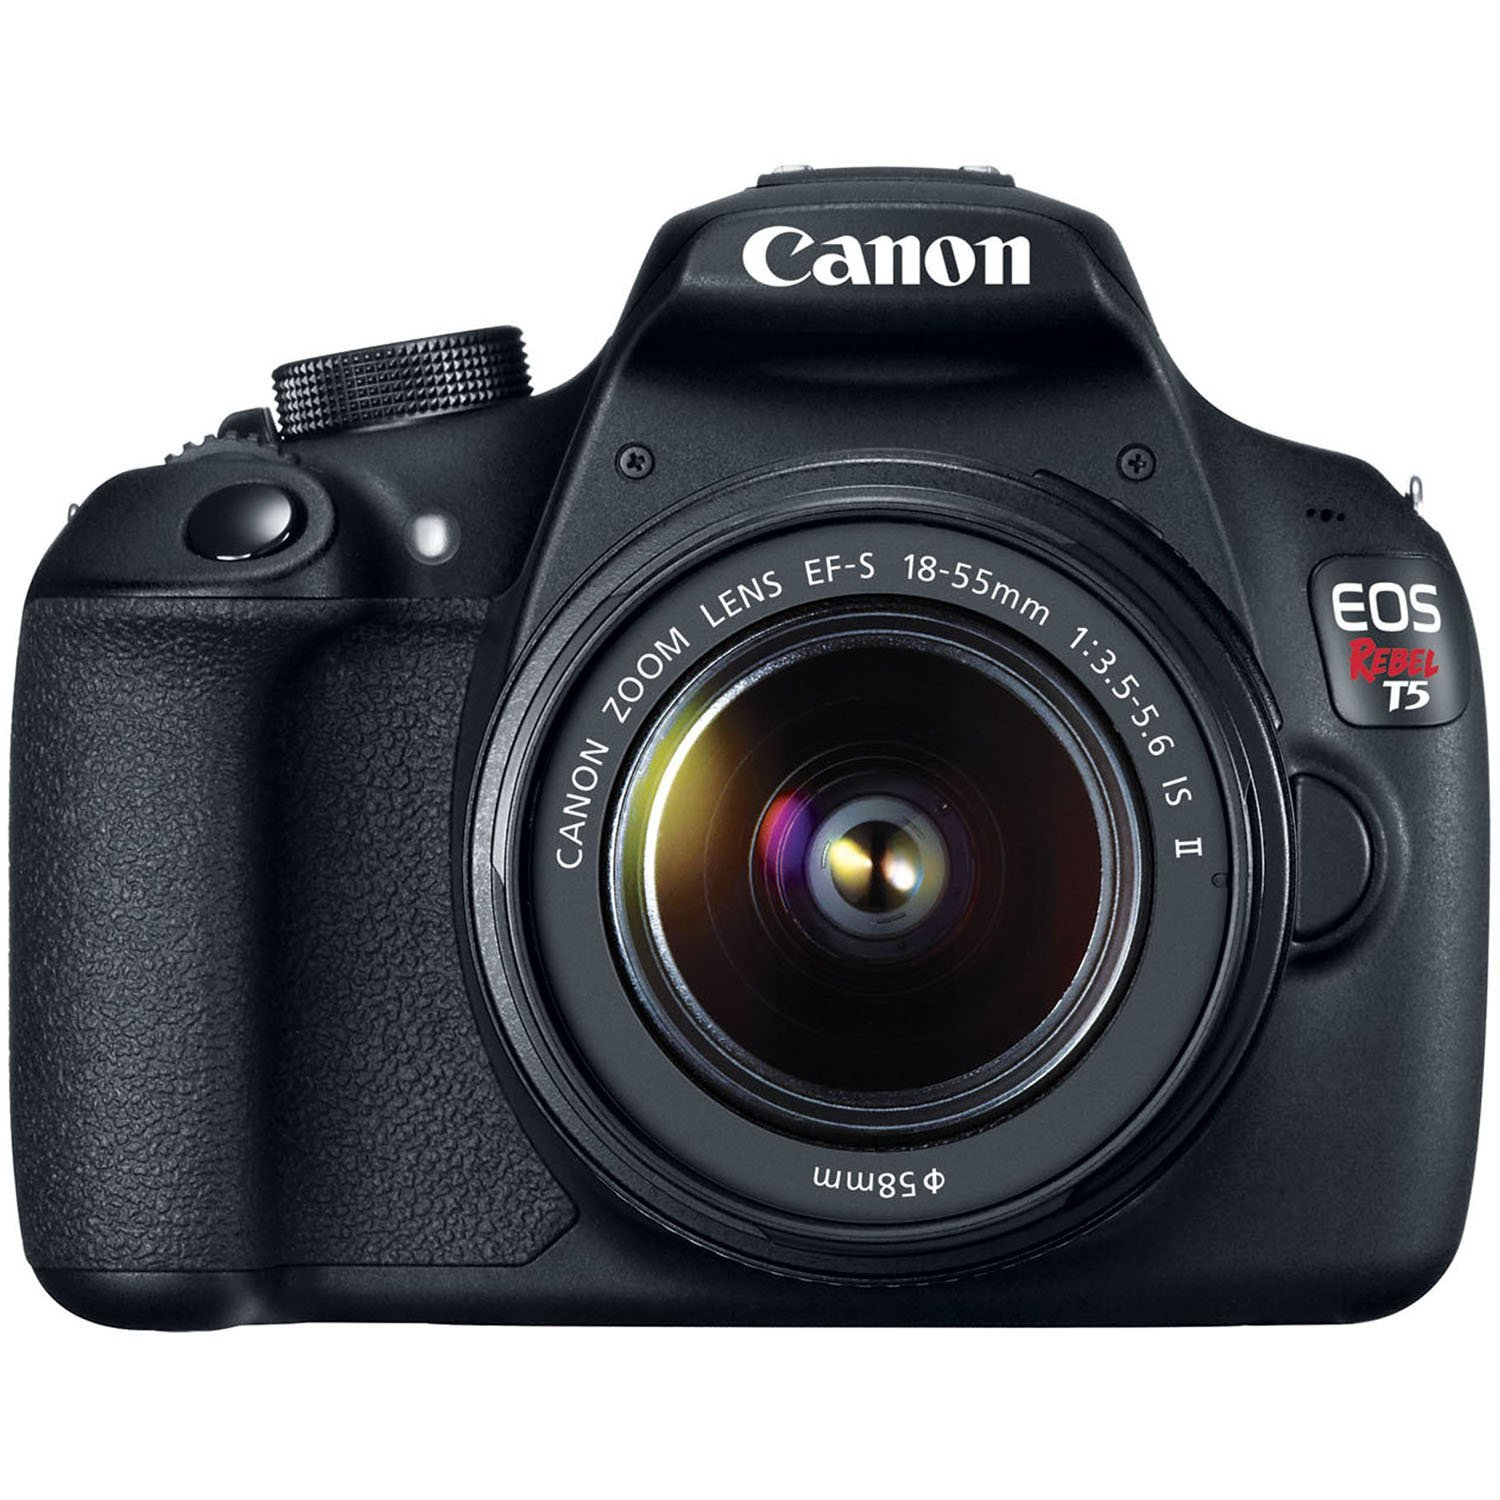 Refurbished EOS 5D Mark III Canon is proud to present the highly anticipated EOS 5D Mark III. With supercharged EOS performance and stunning full frame, high-resolution image capture, the EOS 5D Mark III is designed to perform.